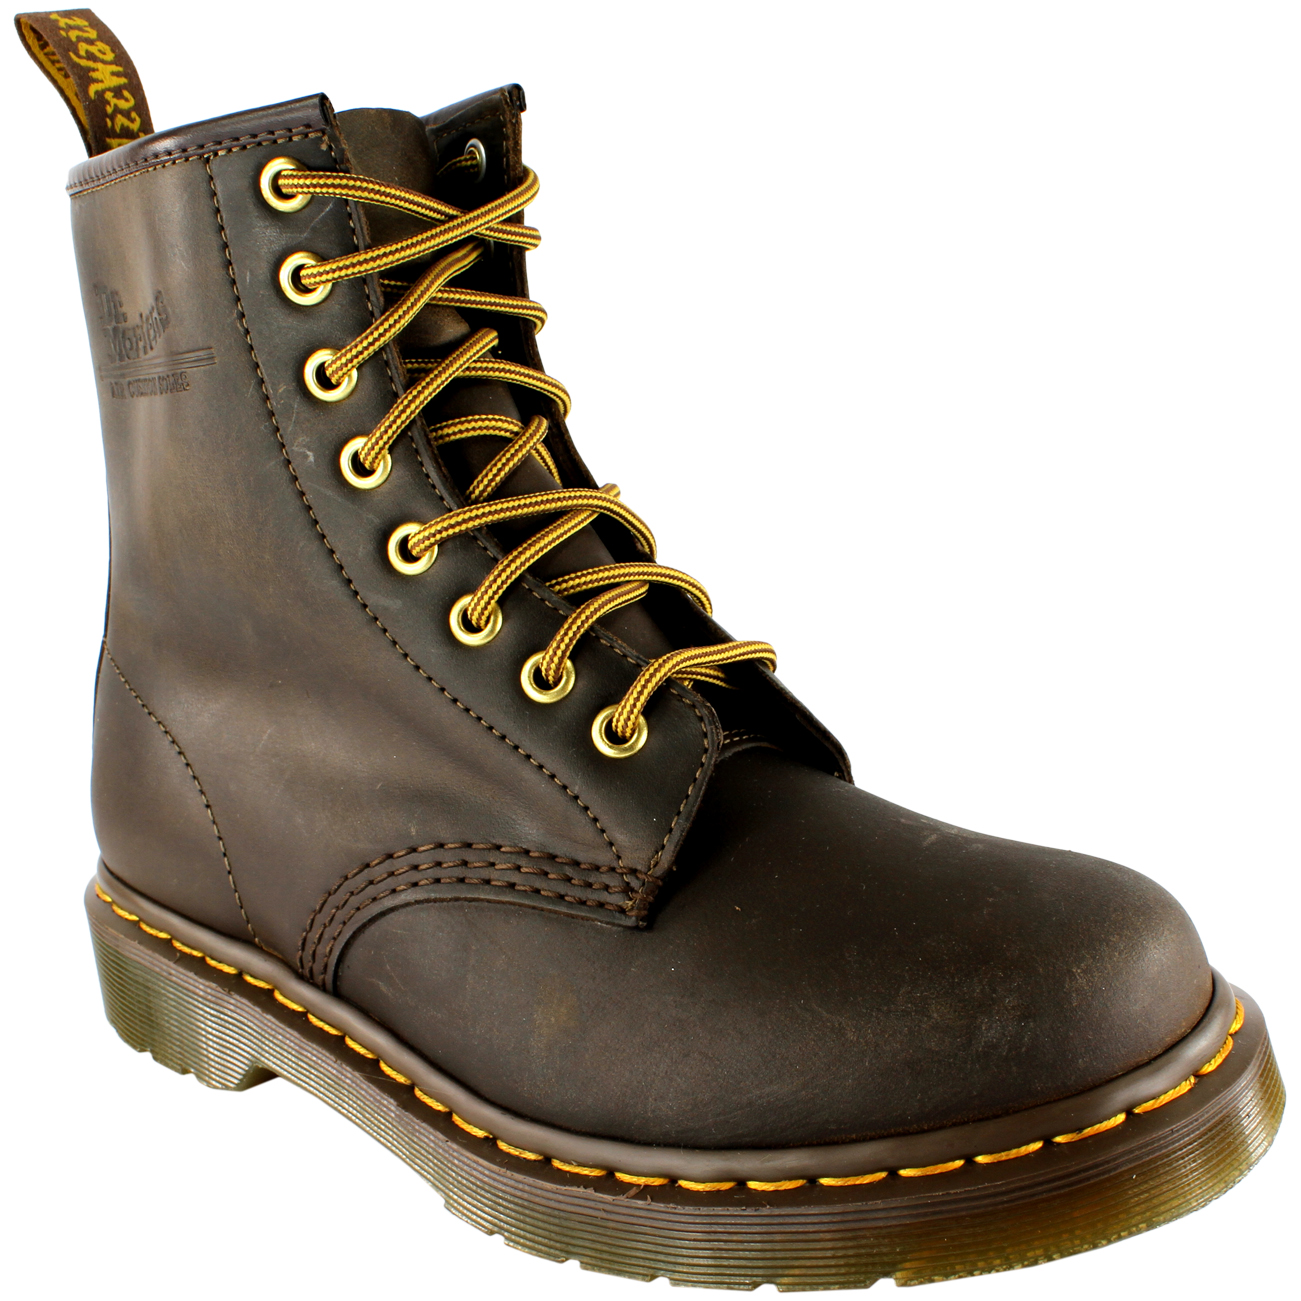 Grandes zapatos con descuento Ladies Dr Martens 1460 Classic Lace Up Leather Ankle Military Boots All Sizes